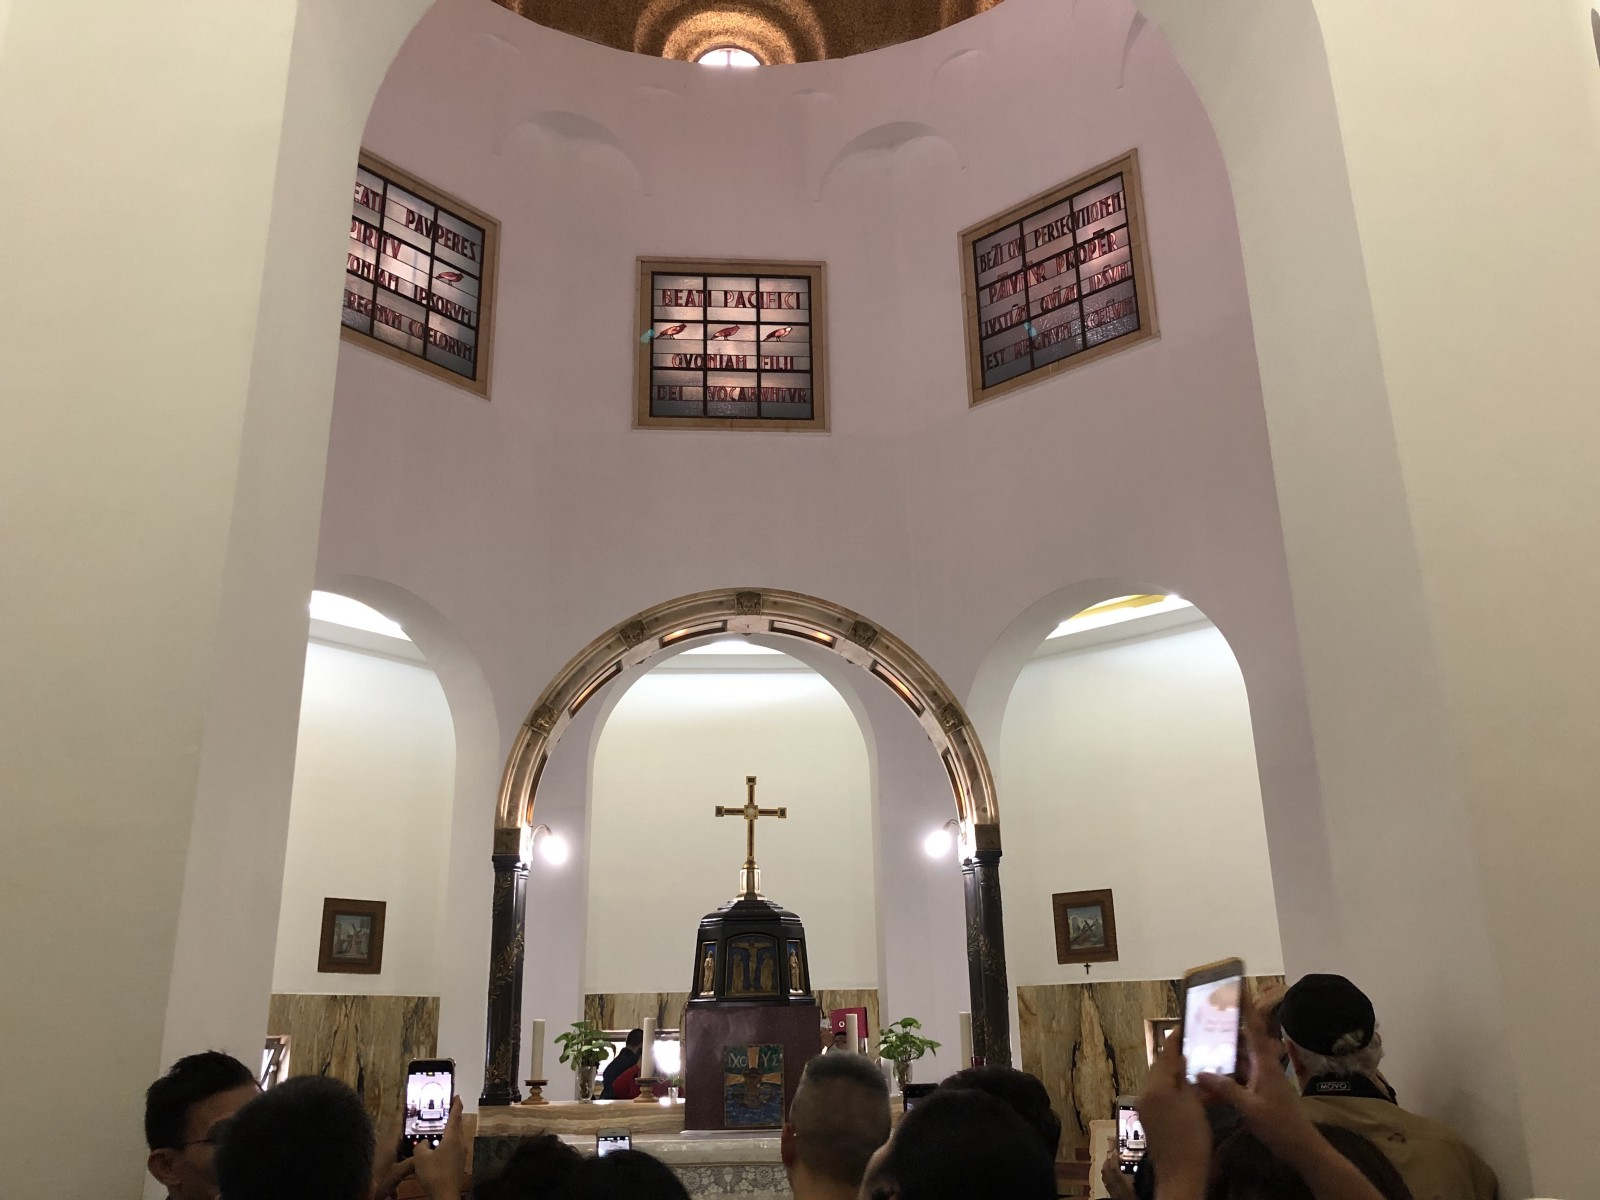 Notice all the phones taking a picture of the altar